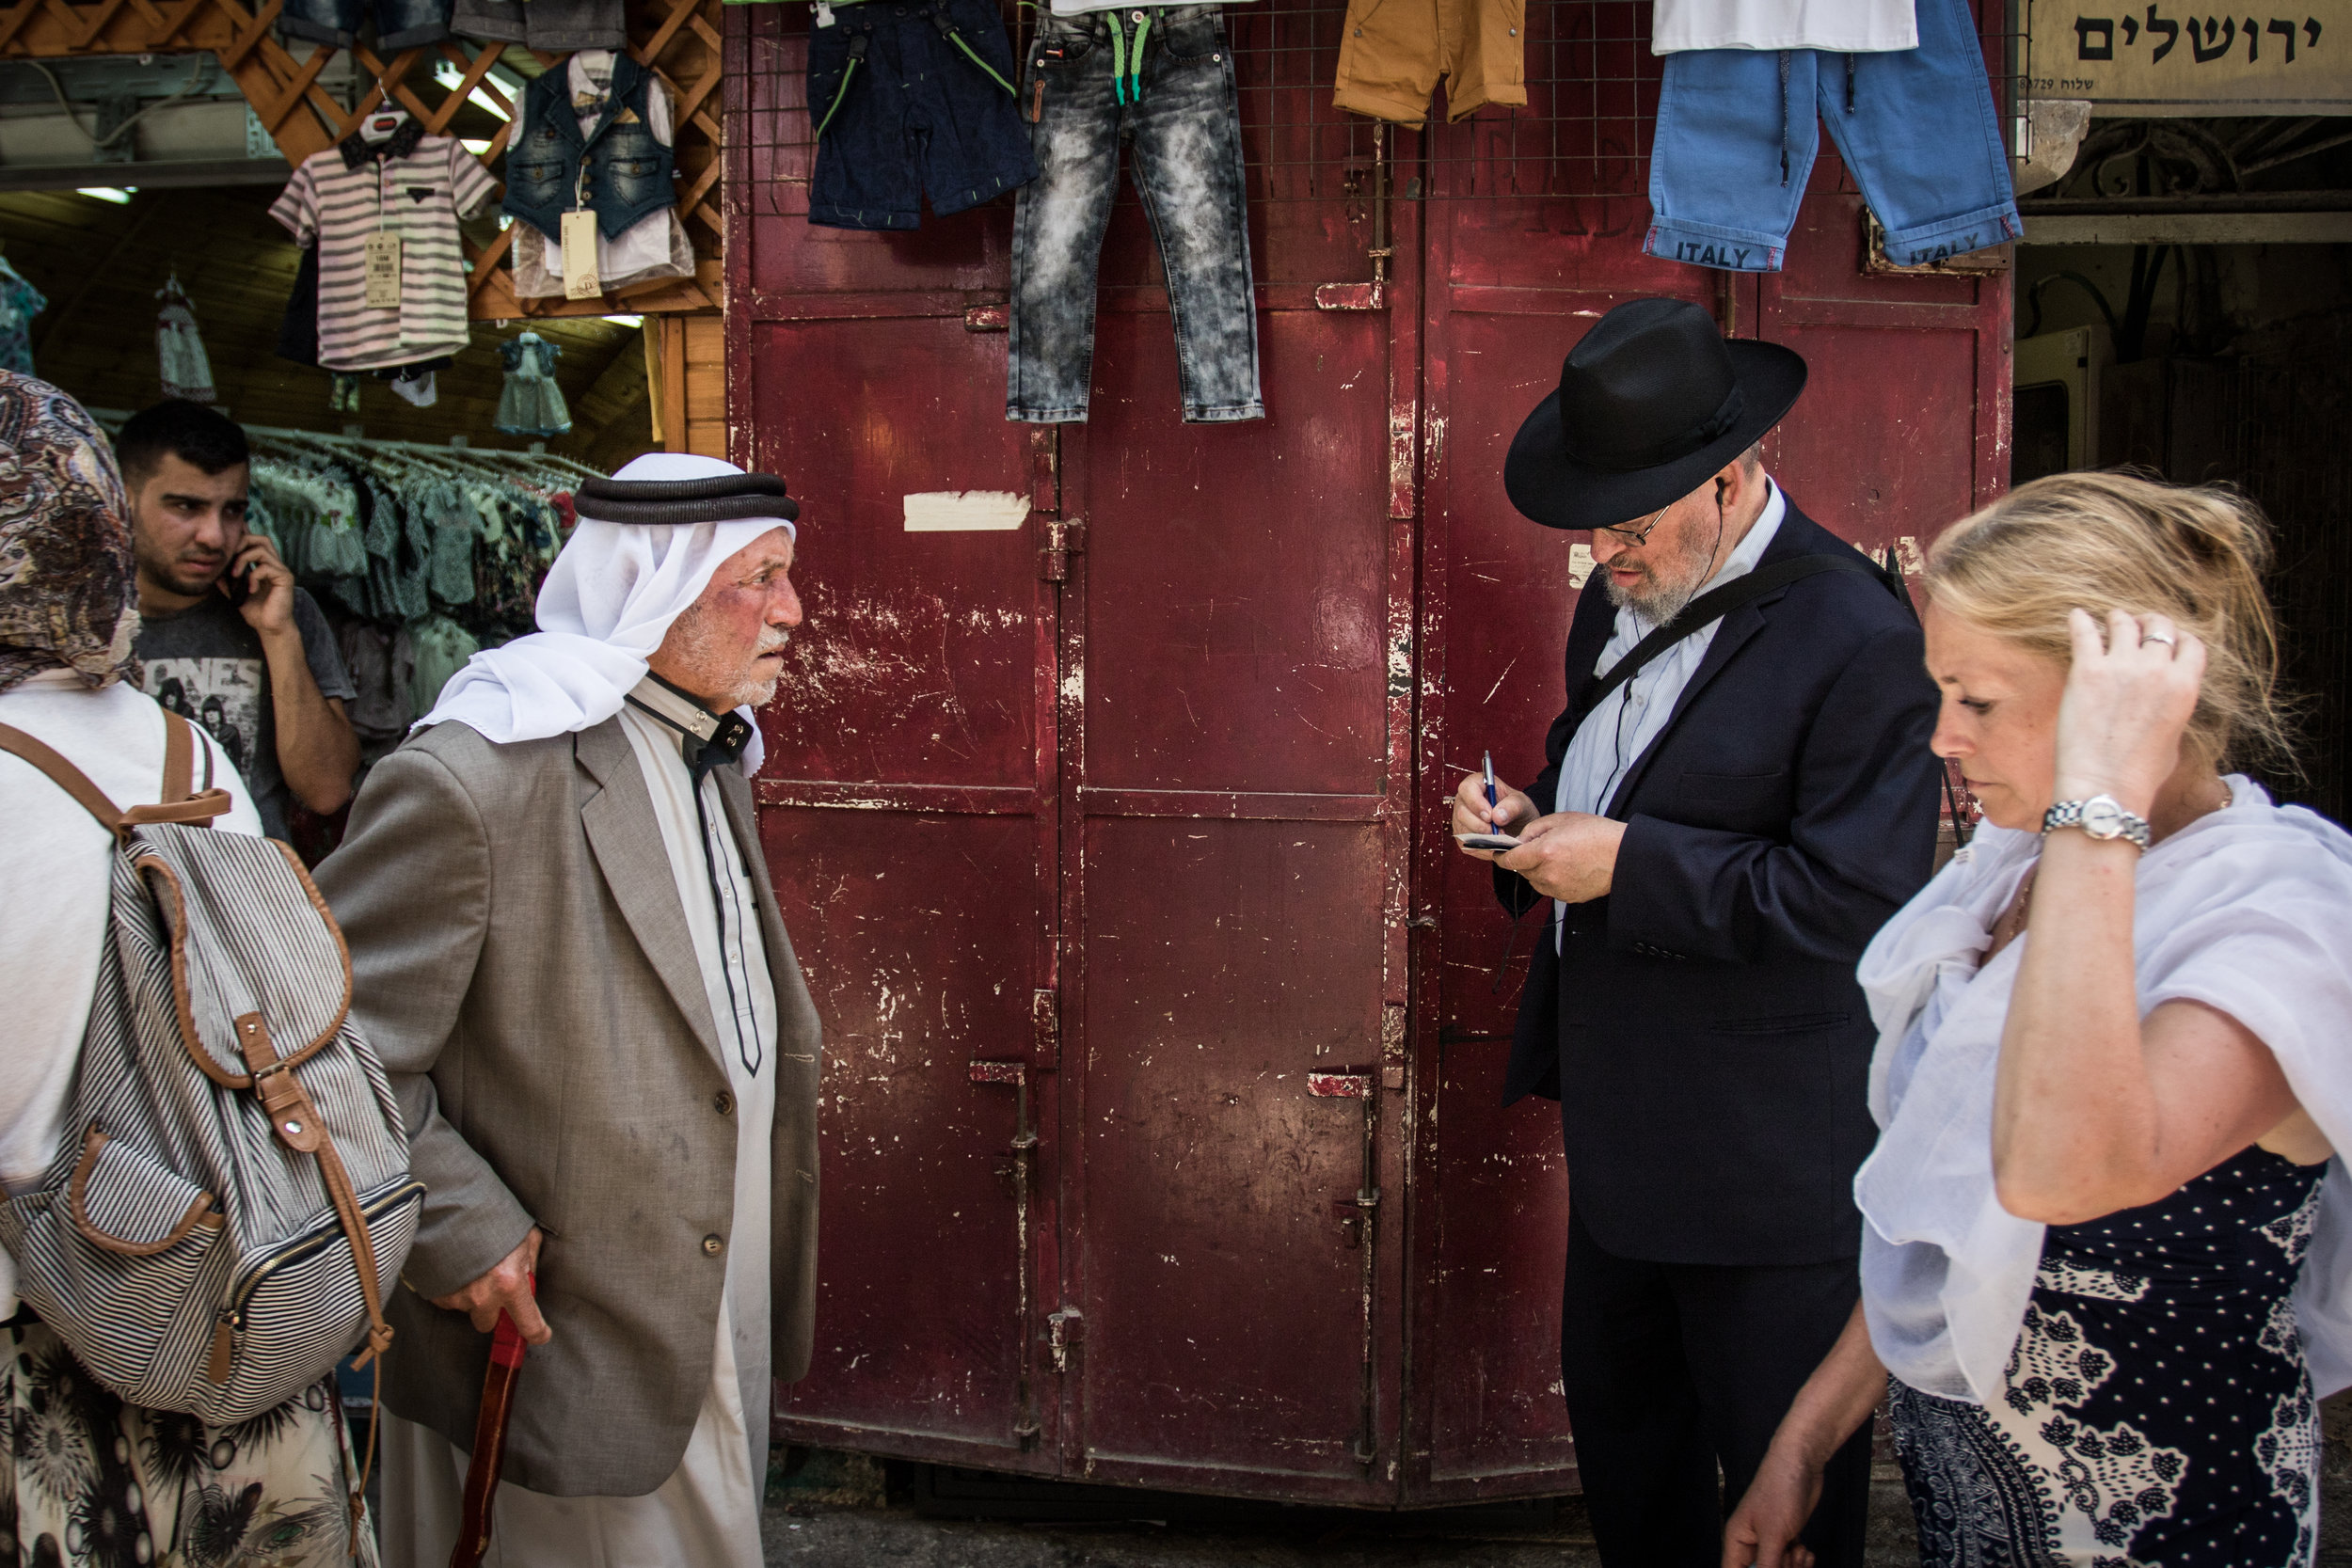 A Muslim man wearing a Keffiyeh passes by an Orthodox Jewish man in the Muslim quarter of the Old City near one of the many merchandise shops lining the streets, June 13, 2016.